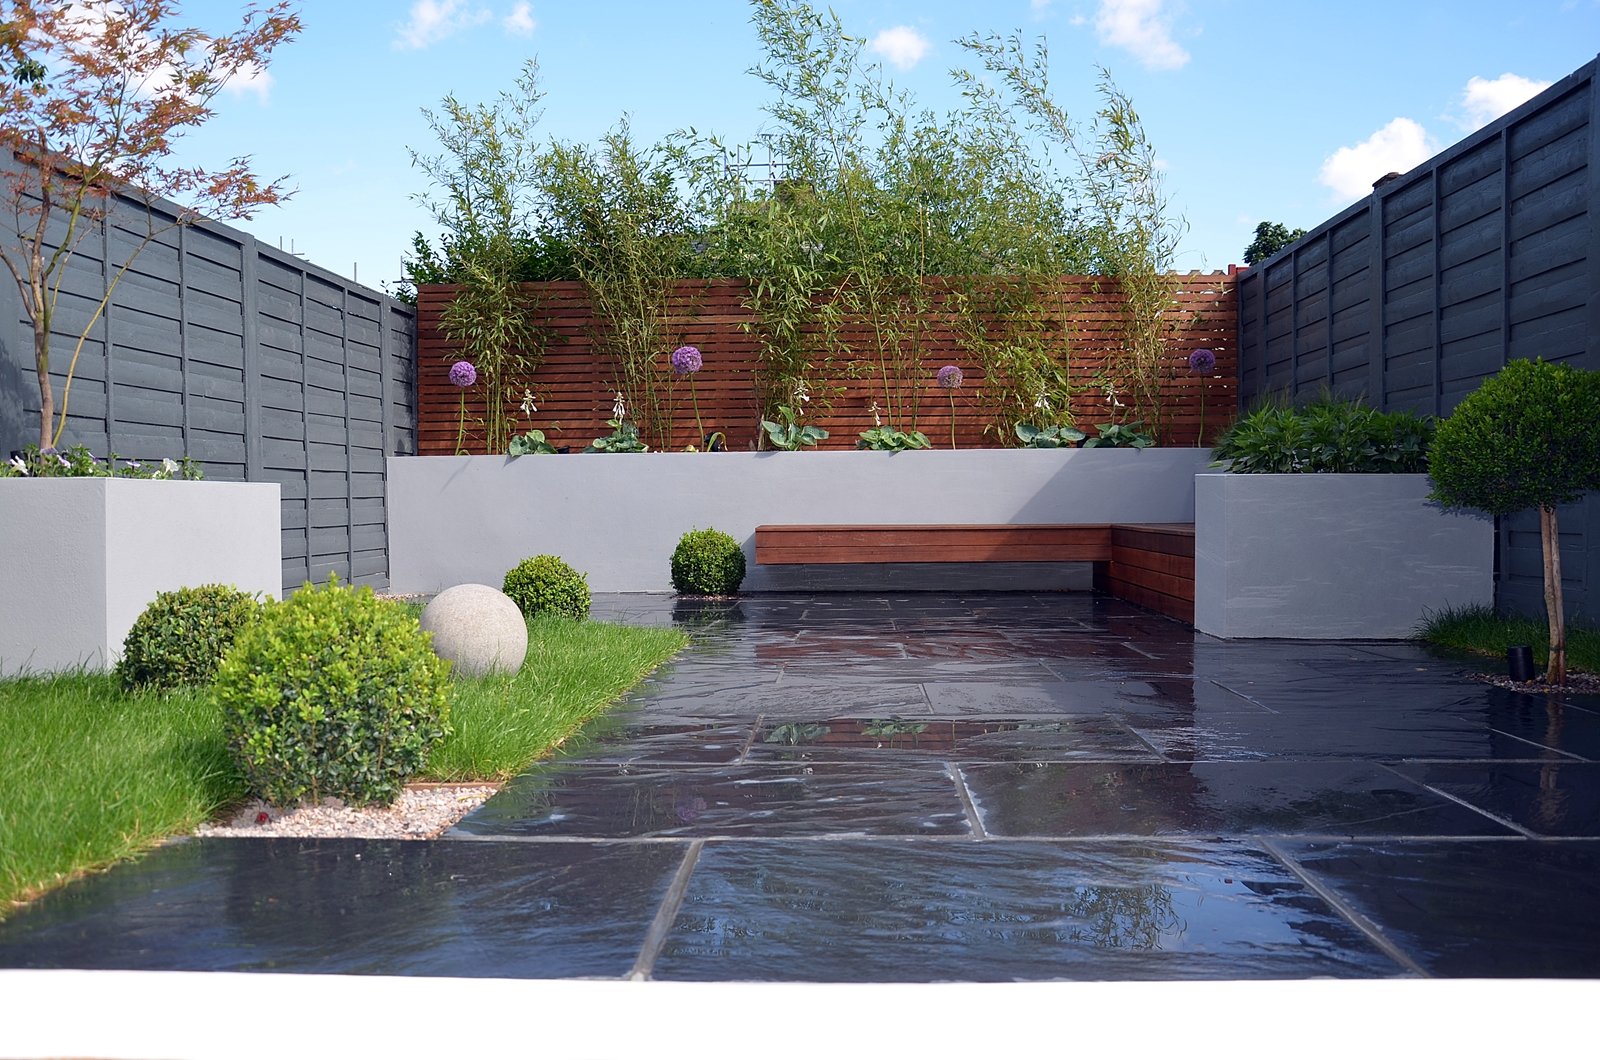 Modern garden design london london garden blog for Landscape design london